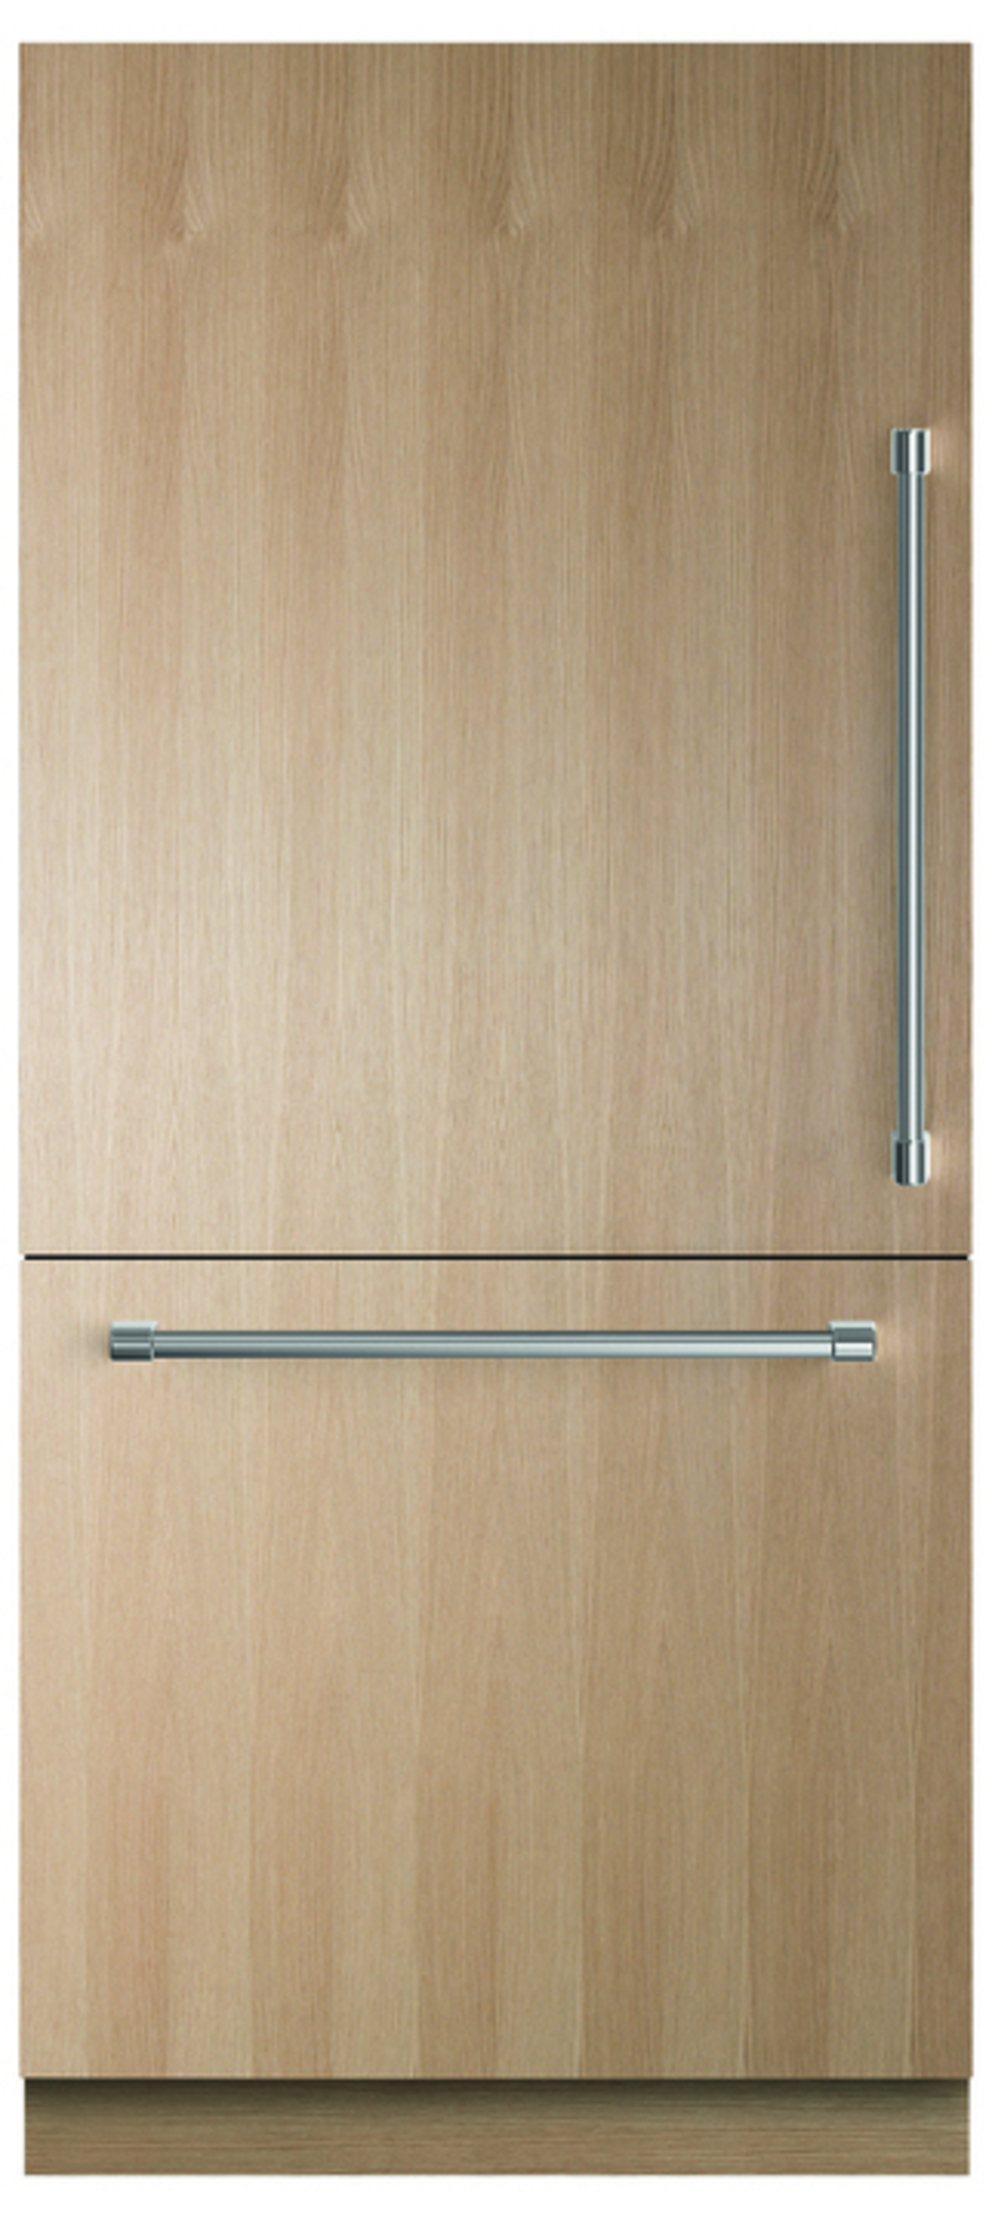 Réfrigérateurs Fisher&Paykel RS36W80LJ1